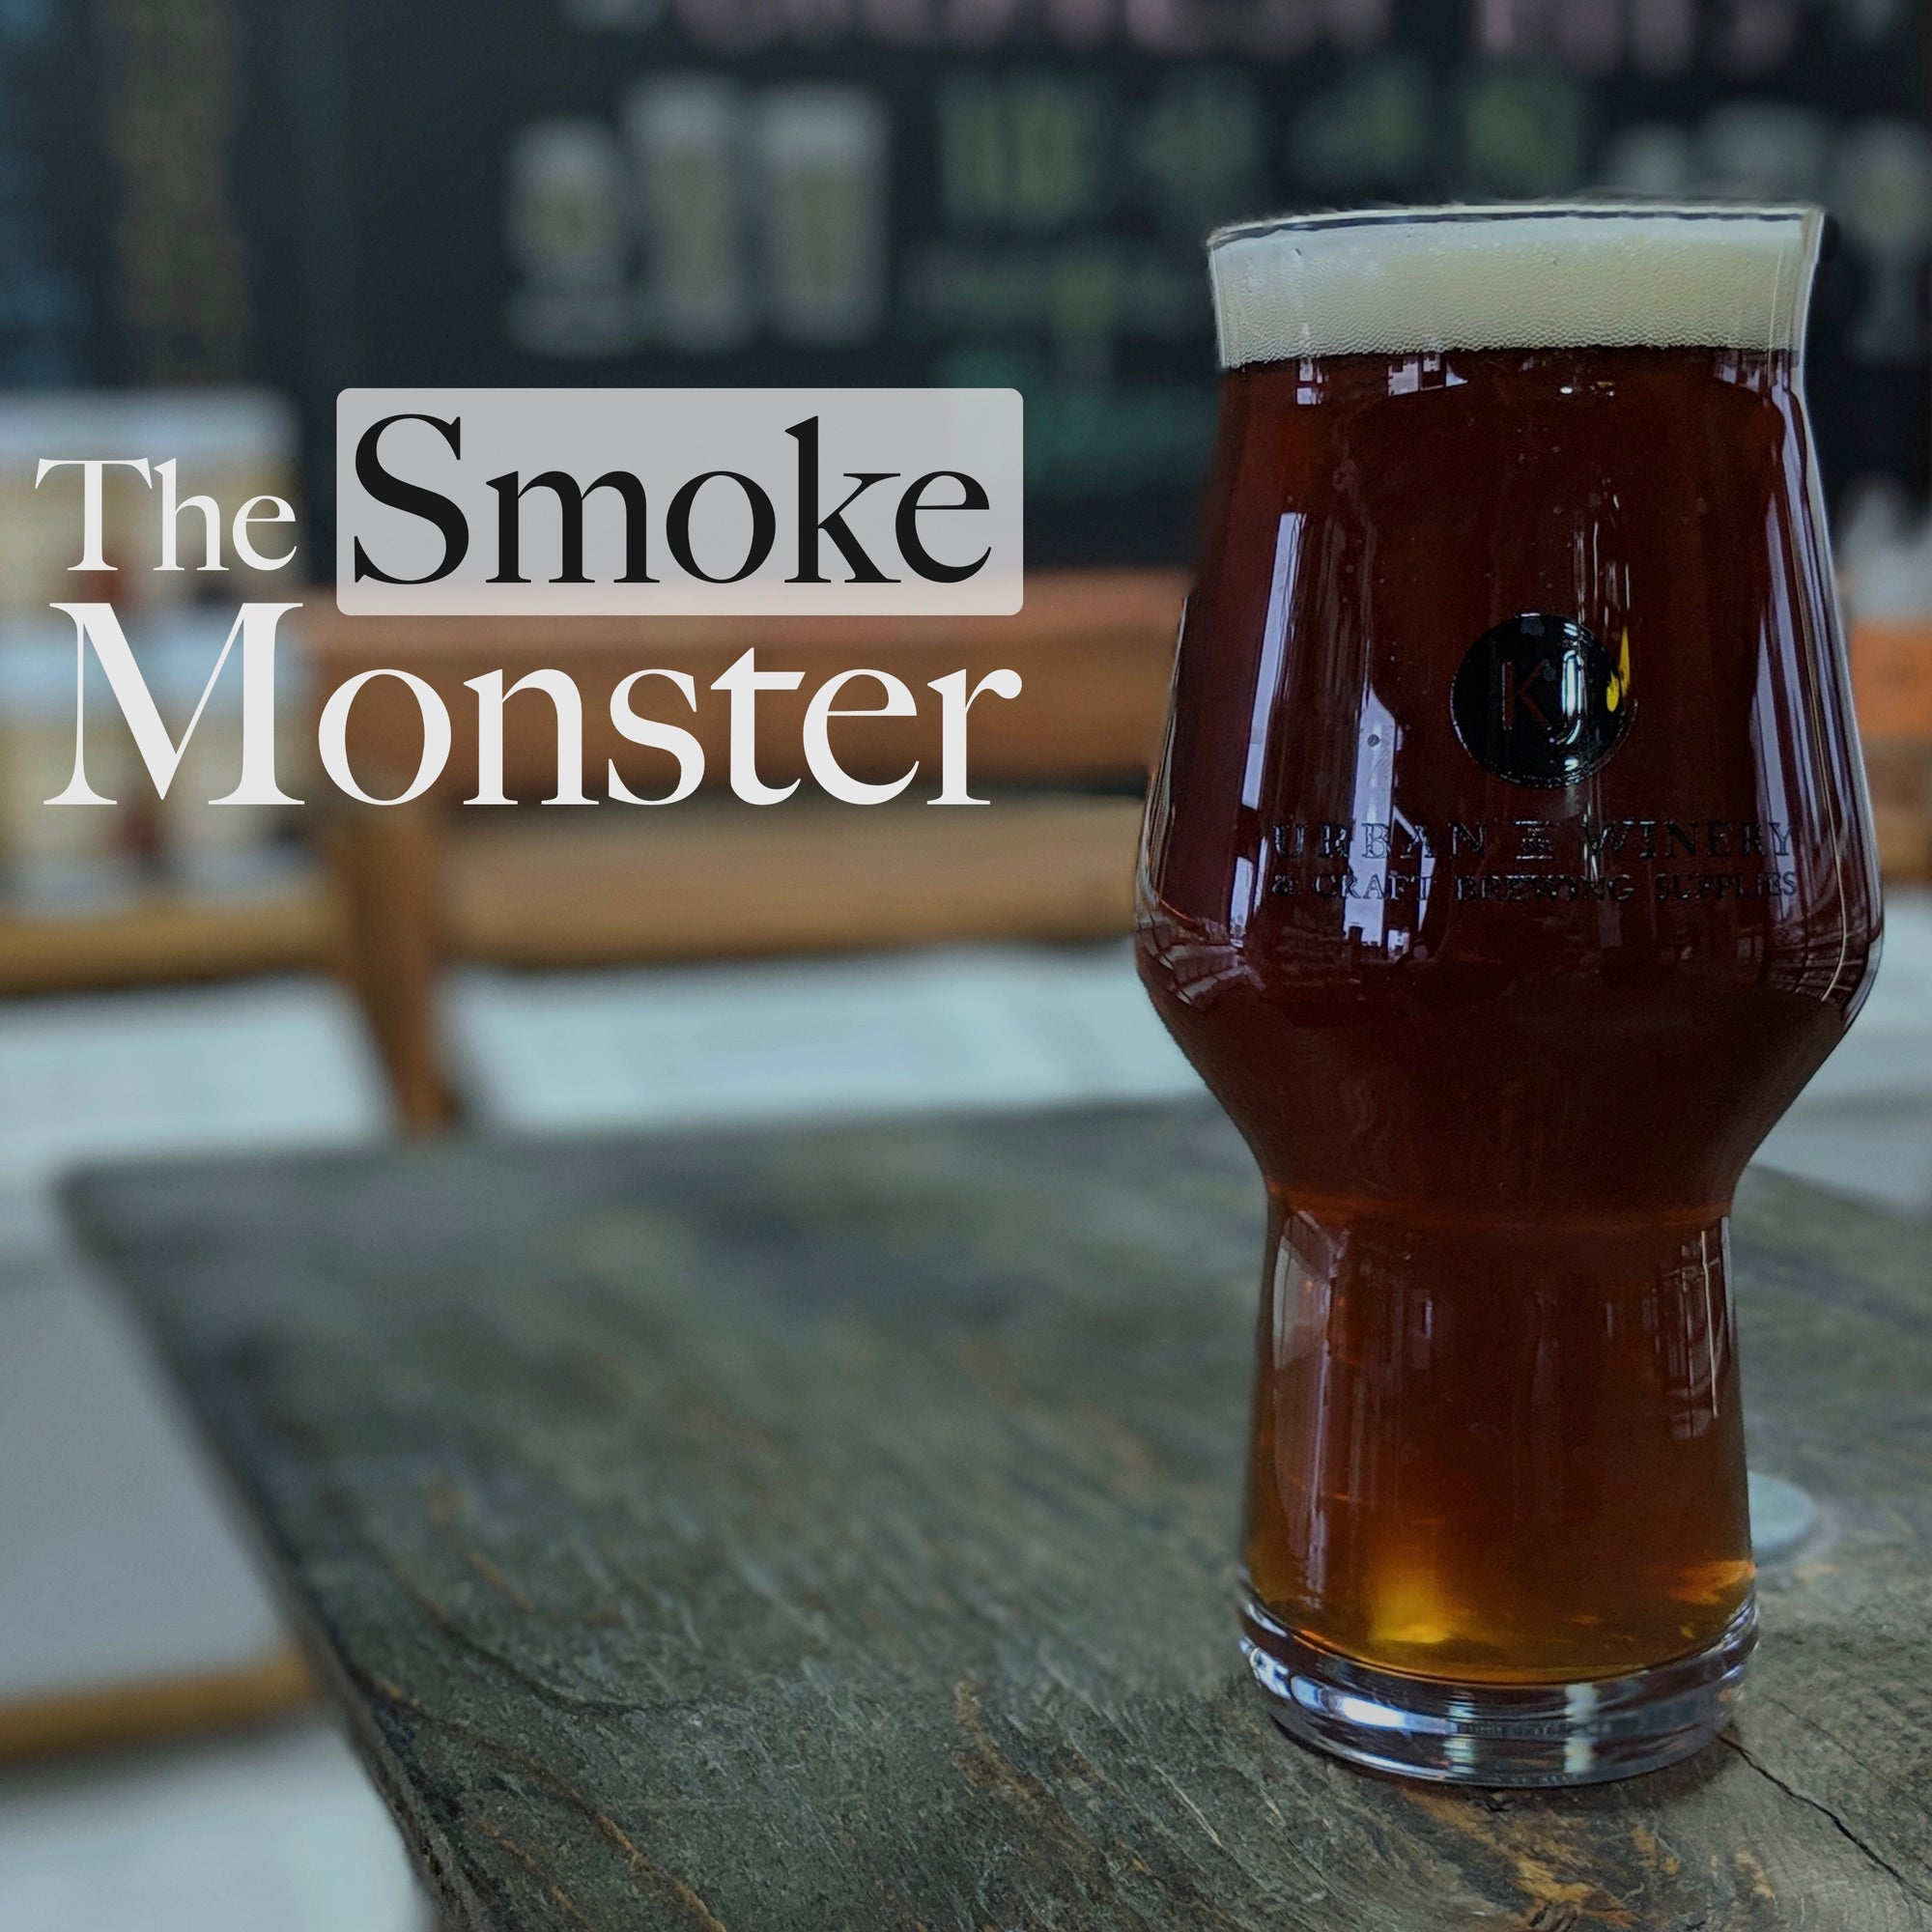 The Smoke Monster